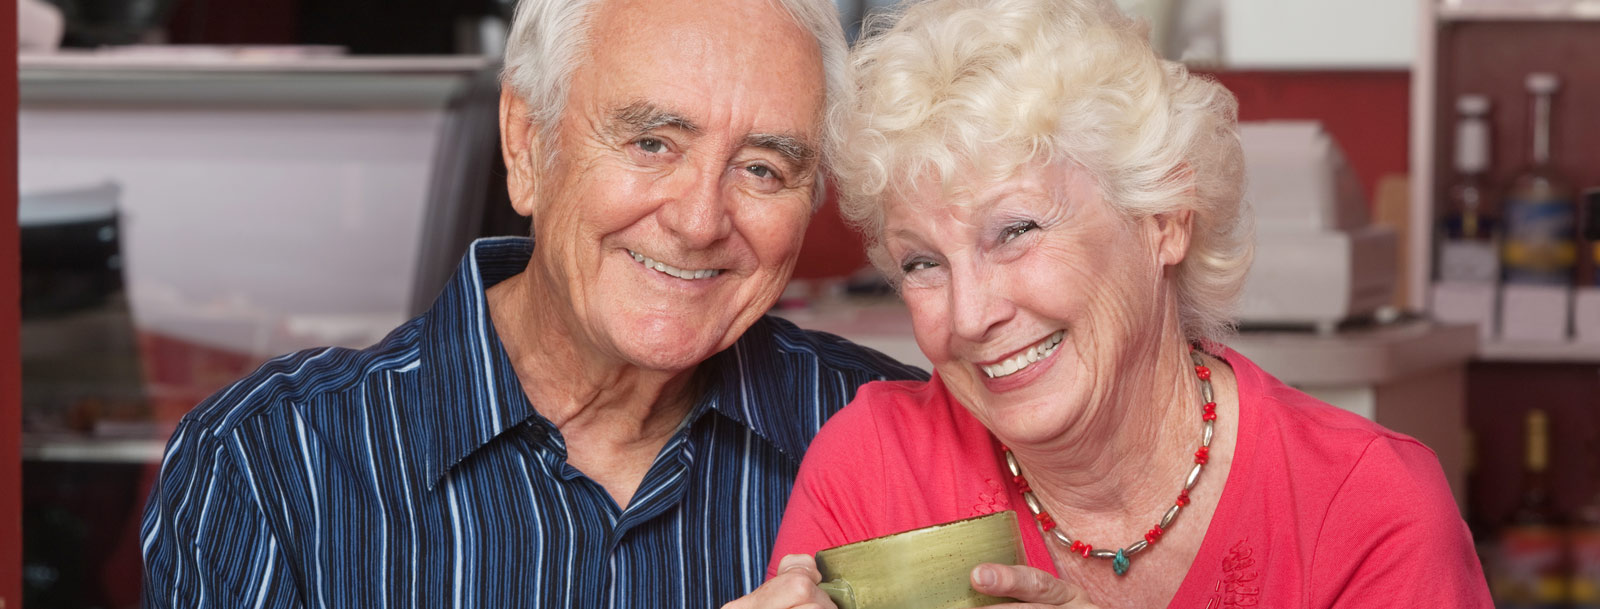 Olathe senior living has lots of living options for you